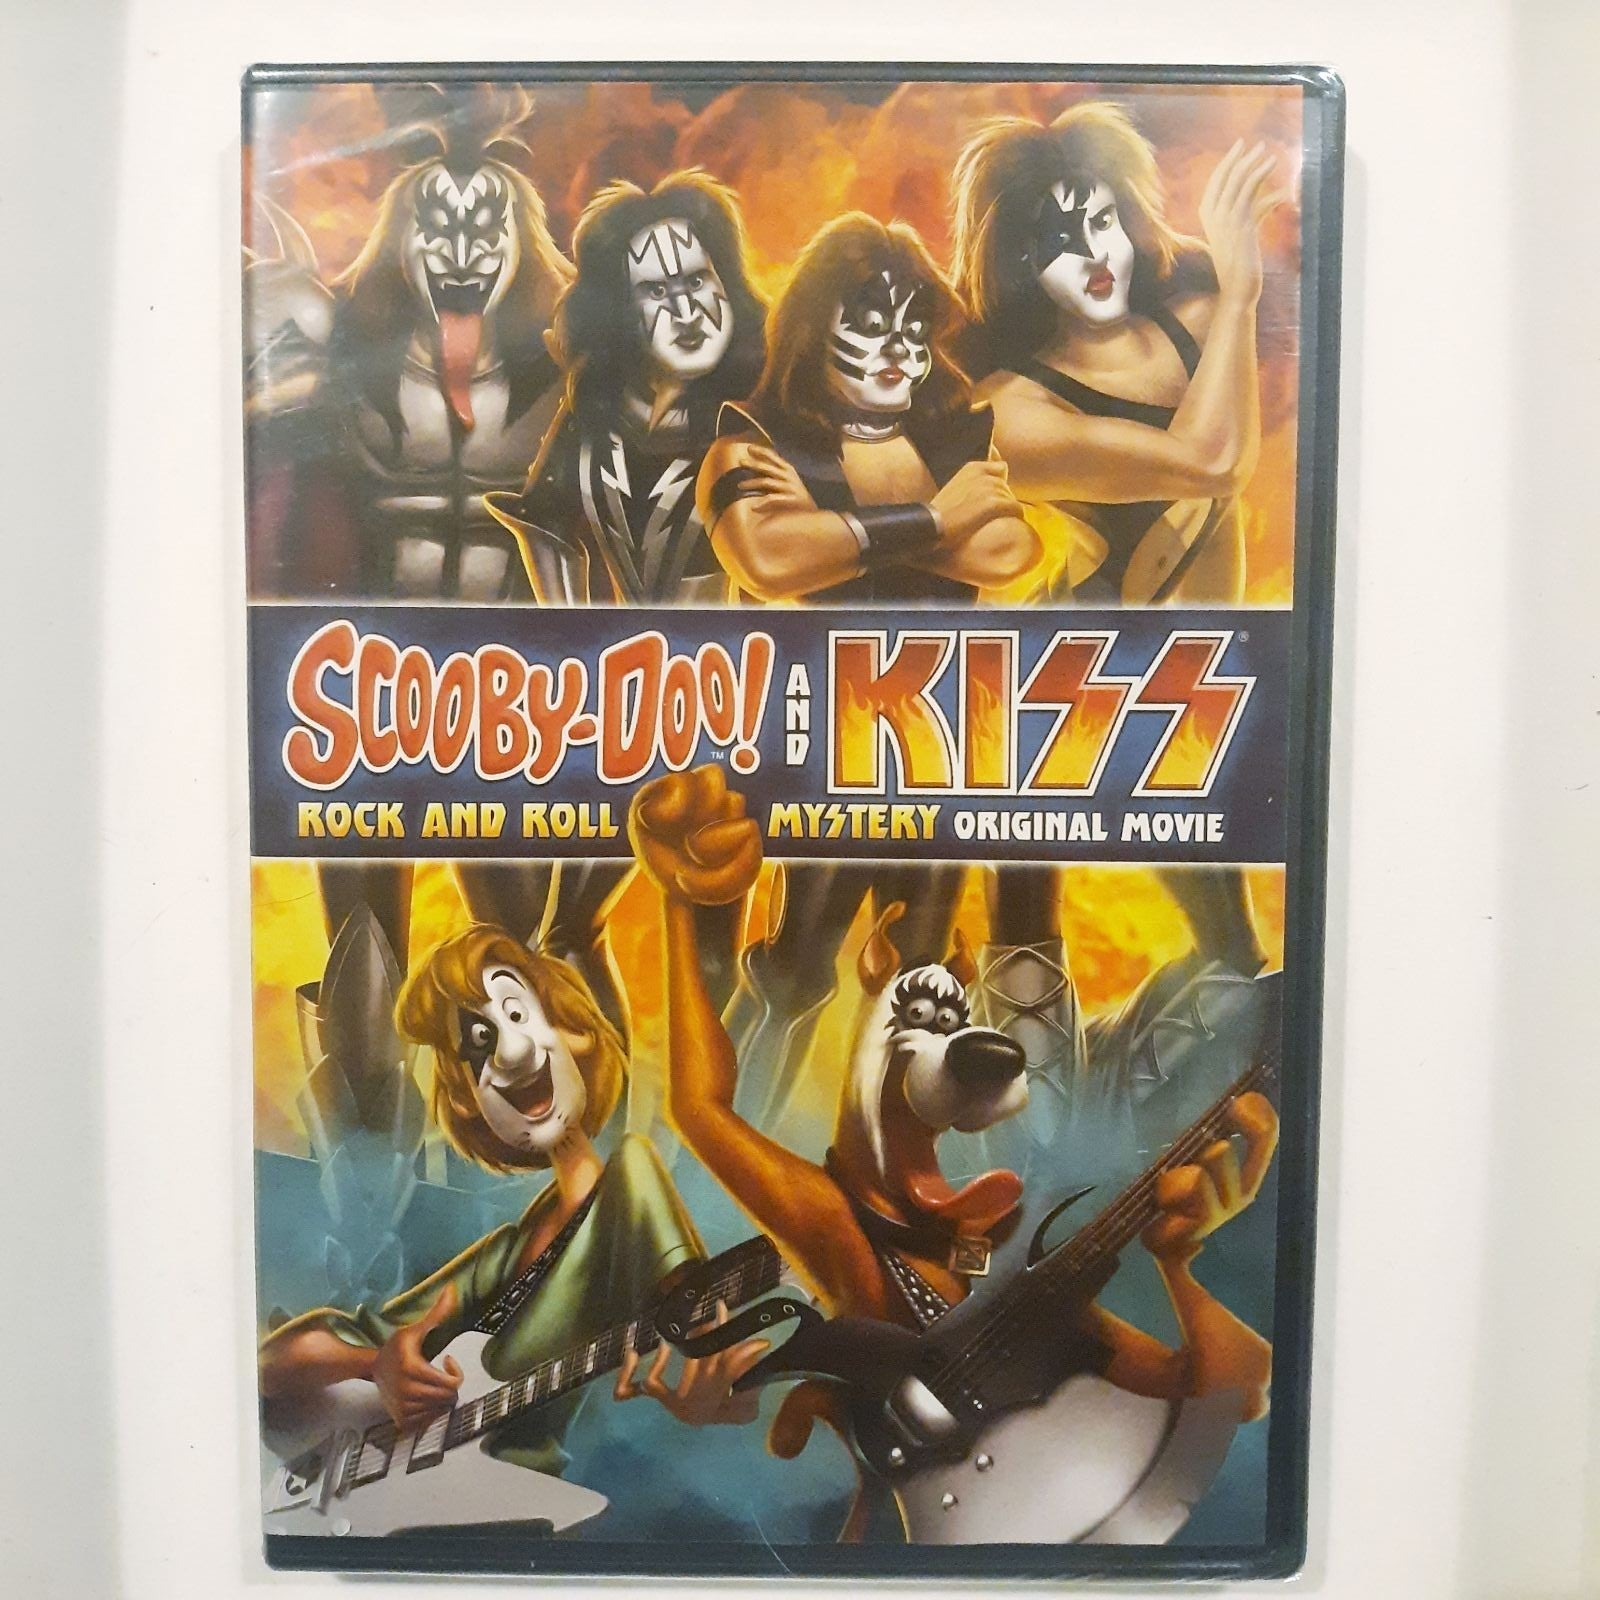 Scooby Doo and Kiss Movie DVD